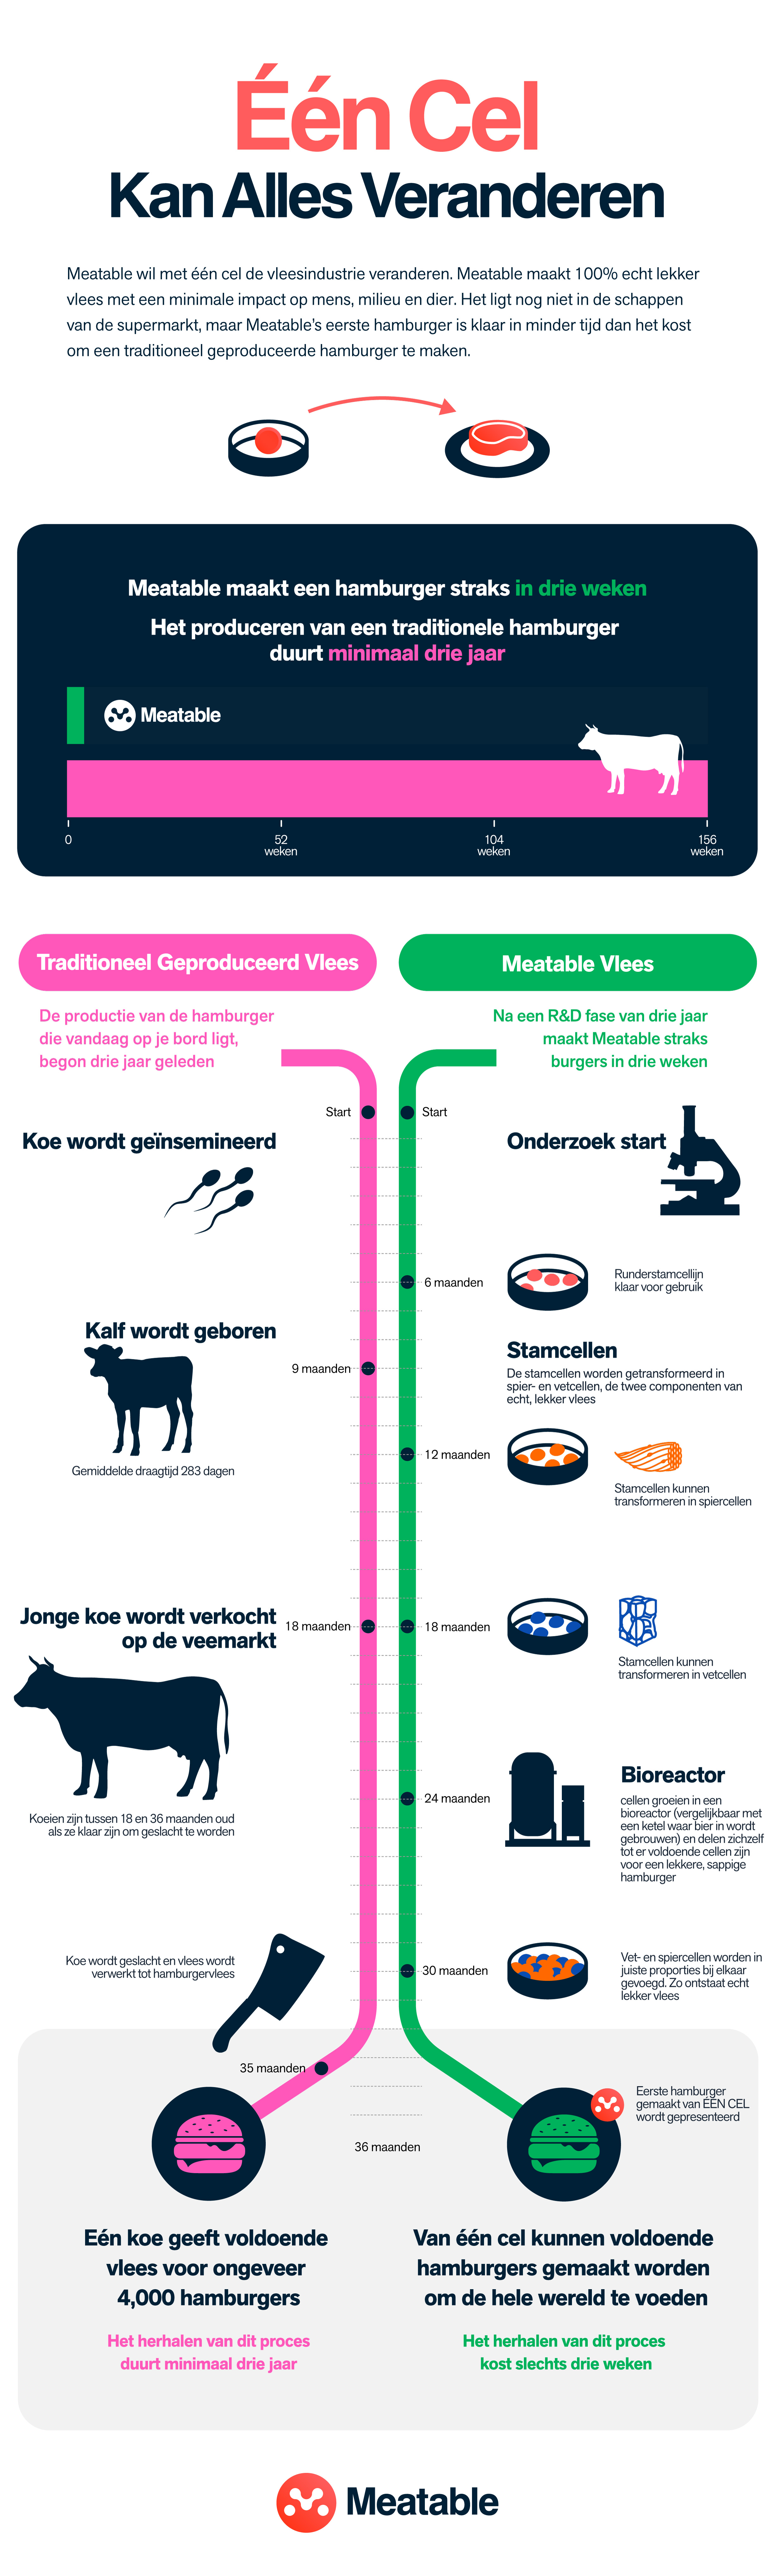 Meatable_infographic_version-07-web-NED.jpg